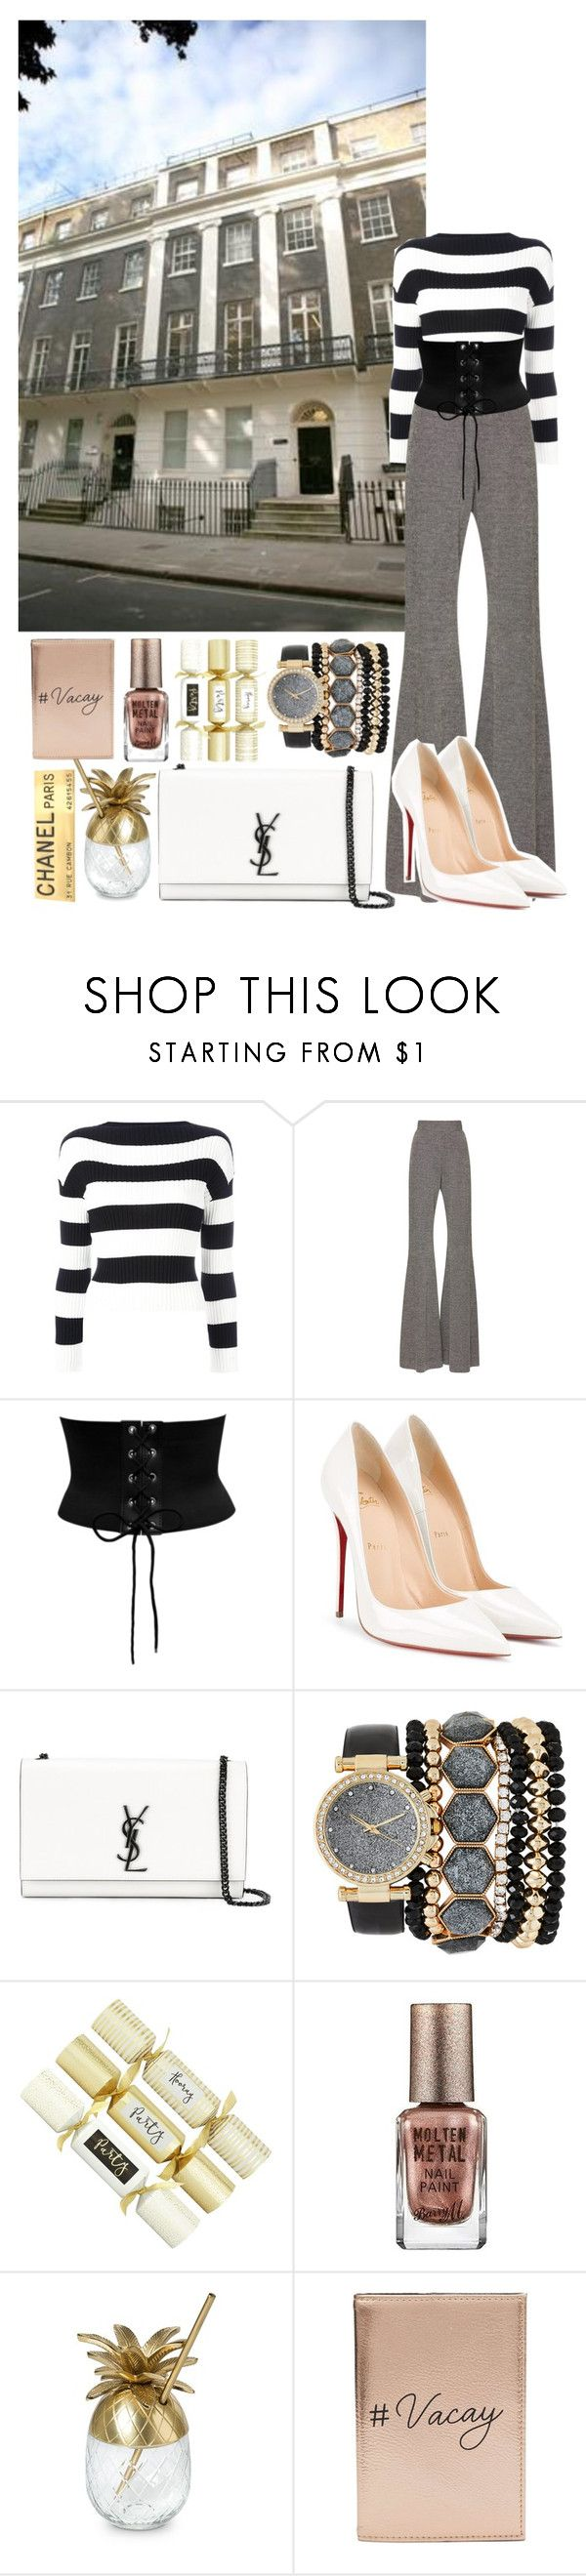 Untitled #436 by danielagreg on Polyvore featuring Boutique Moschino, Beaufille, Christian Louboutin, Yves Saint Laurent, Miss Selfridge, Jessica Carlyle, Chanel and Barry M